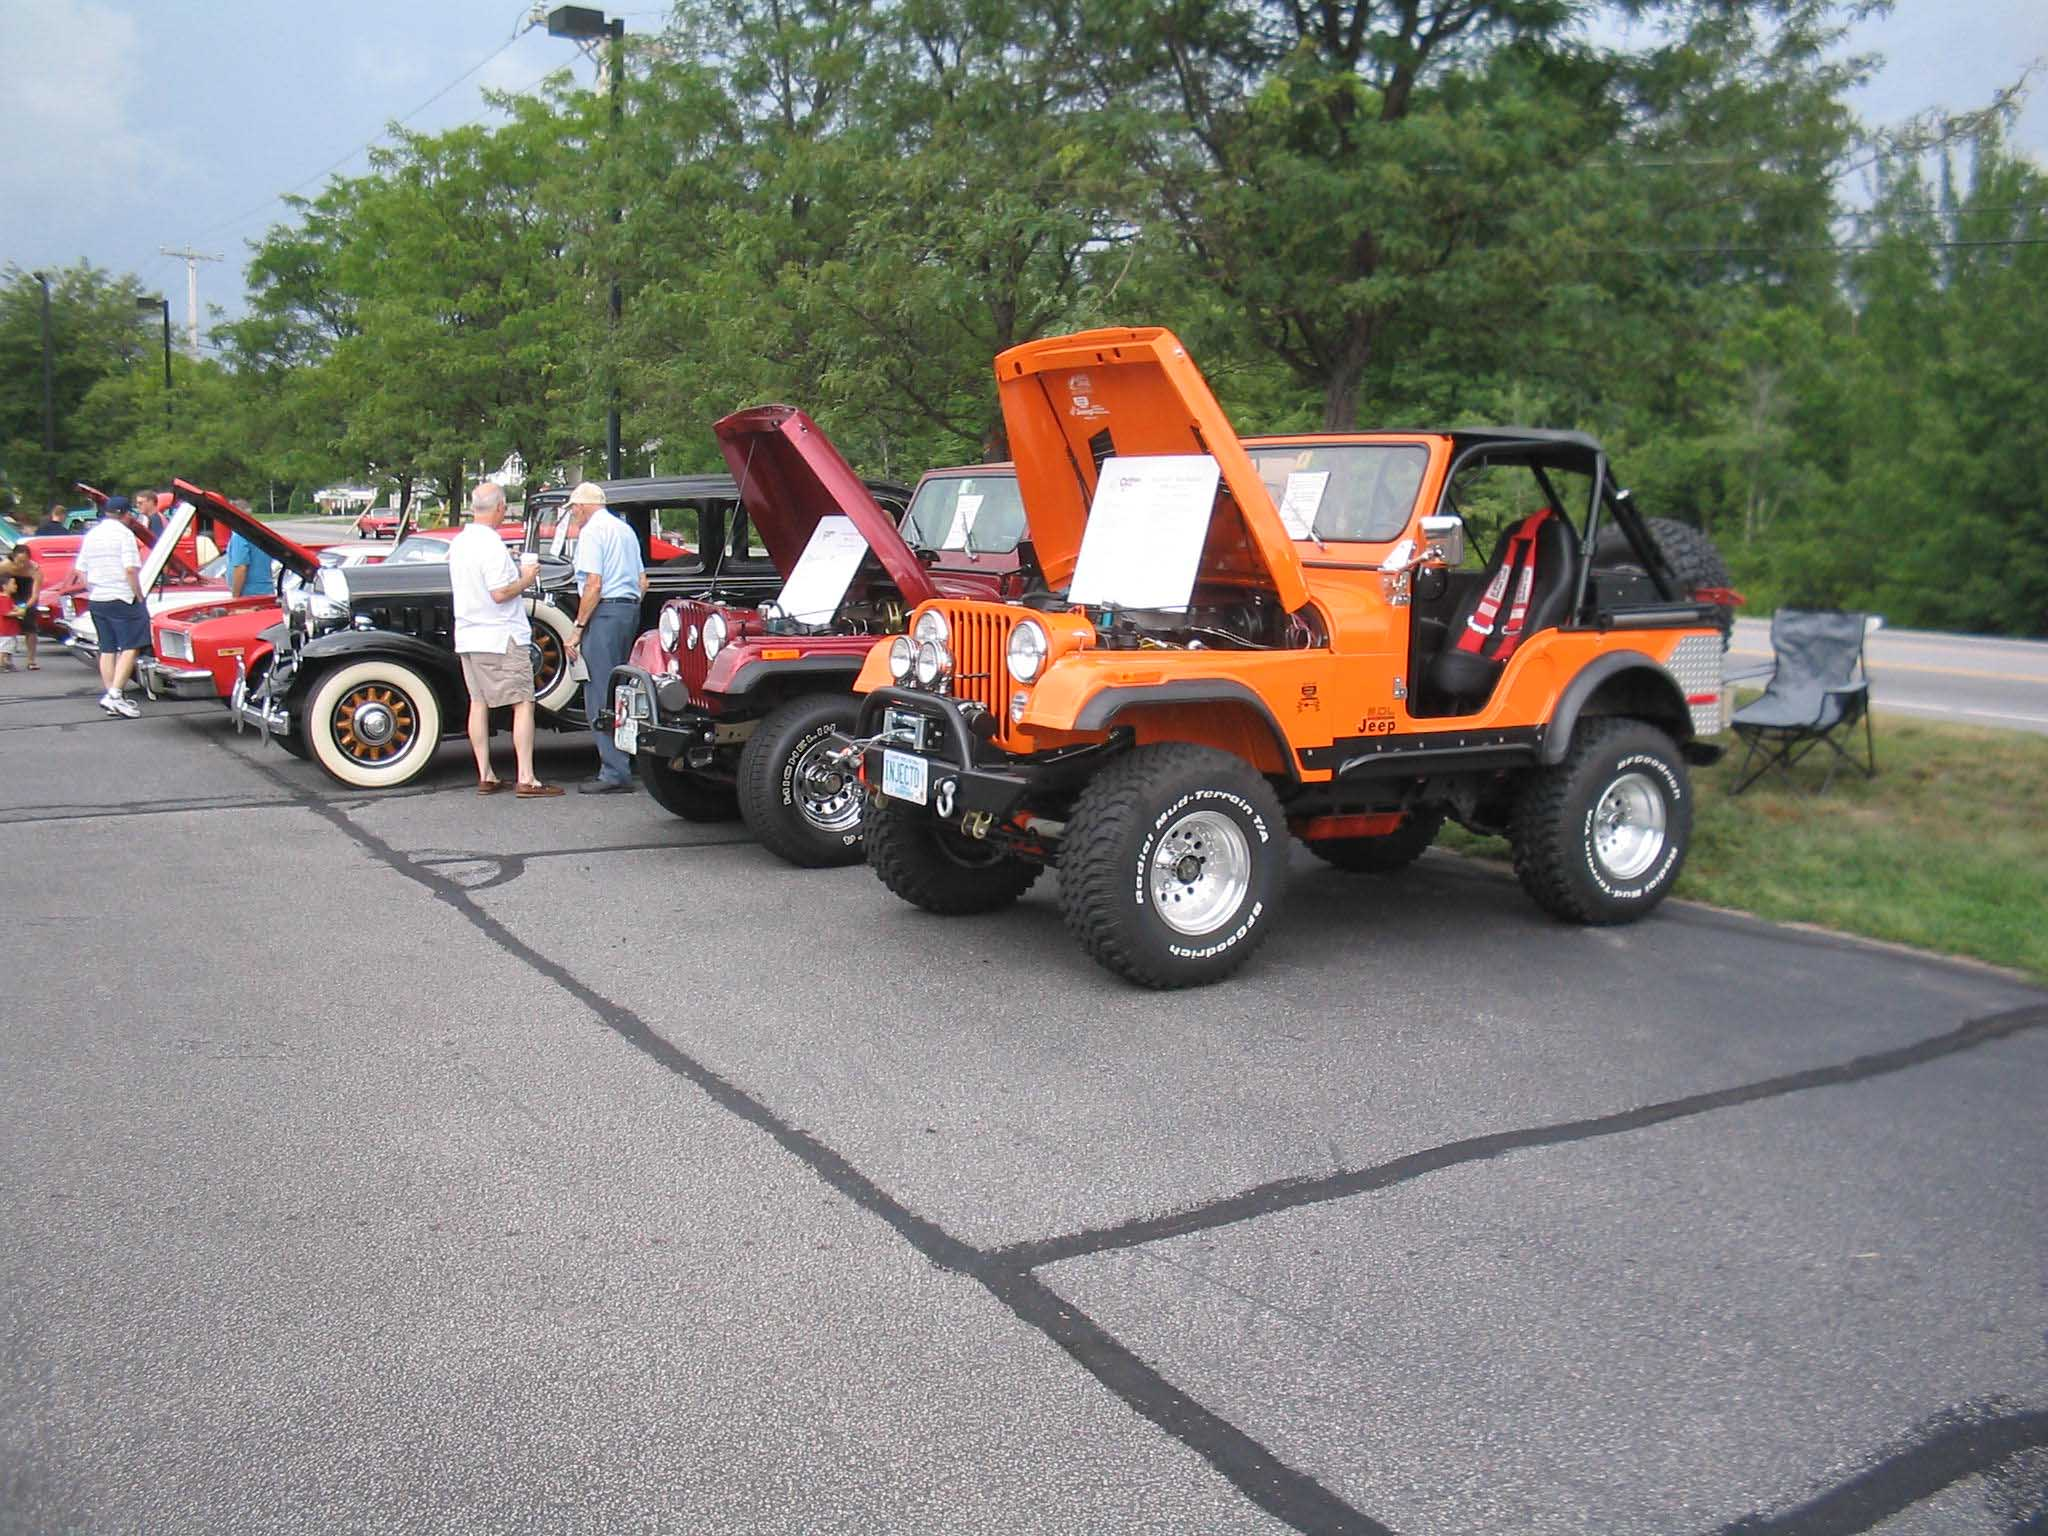 Certifiablejeepcom Completed Bedford NH Historical Society - Nh car show bedford